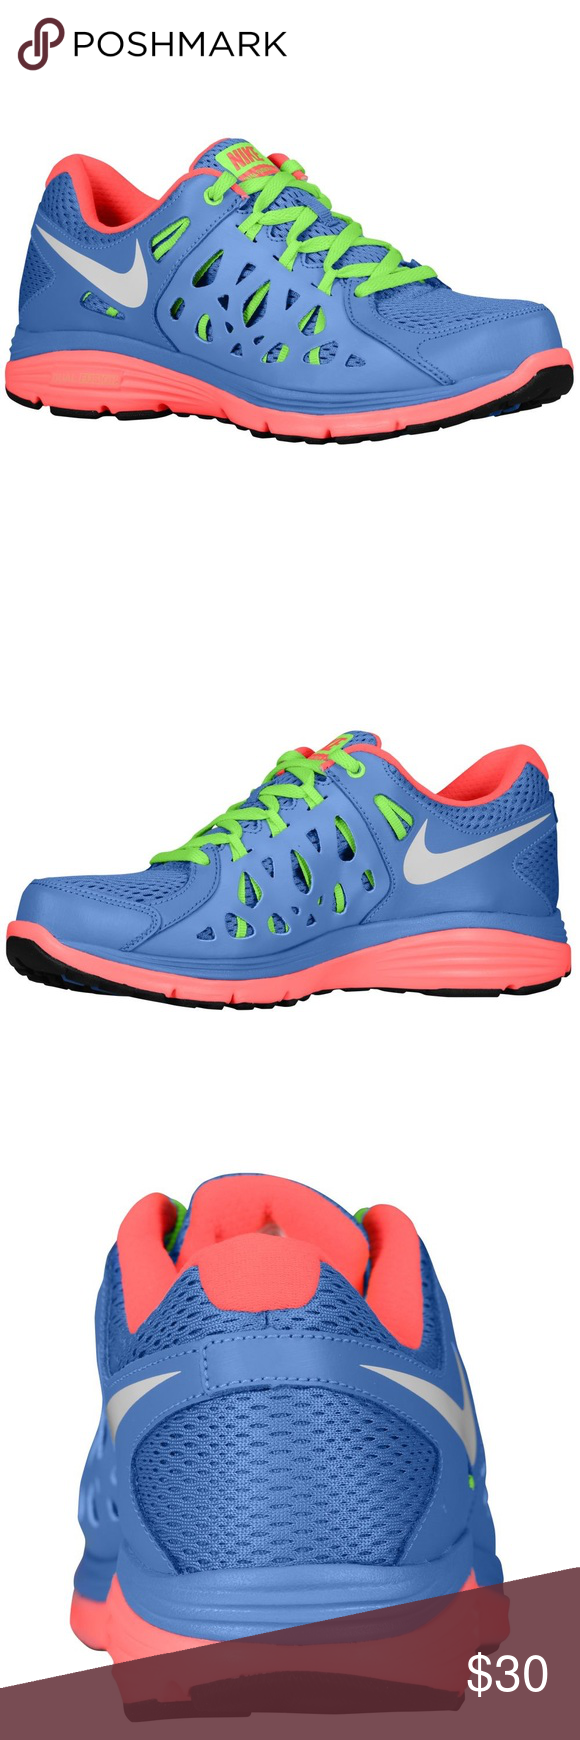 reputable site 20bb8 9d0a0 Women s dual fusion run 2 Nike running shoes Brightly colored Nike running  shoes in good condition. Bottoms of shoes are a bit dirty, but can be  easily ...